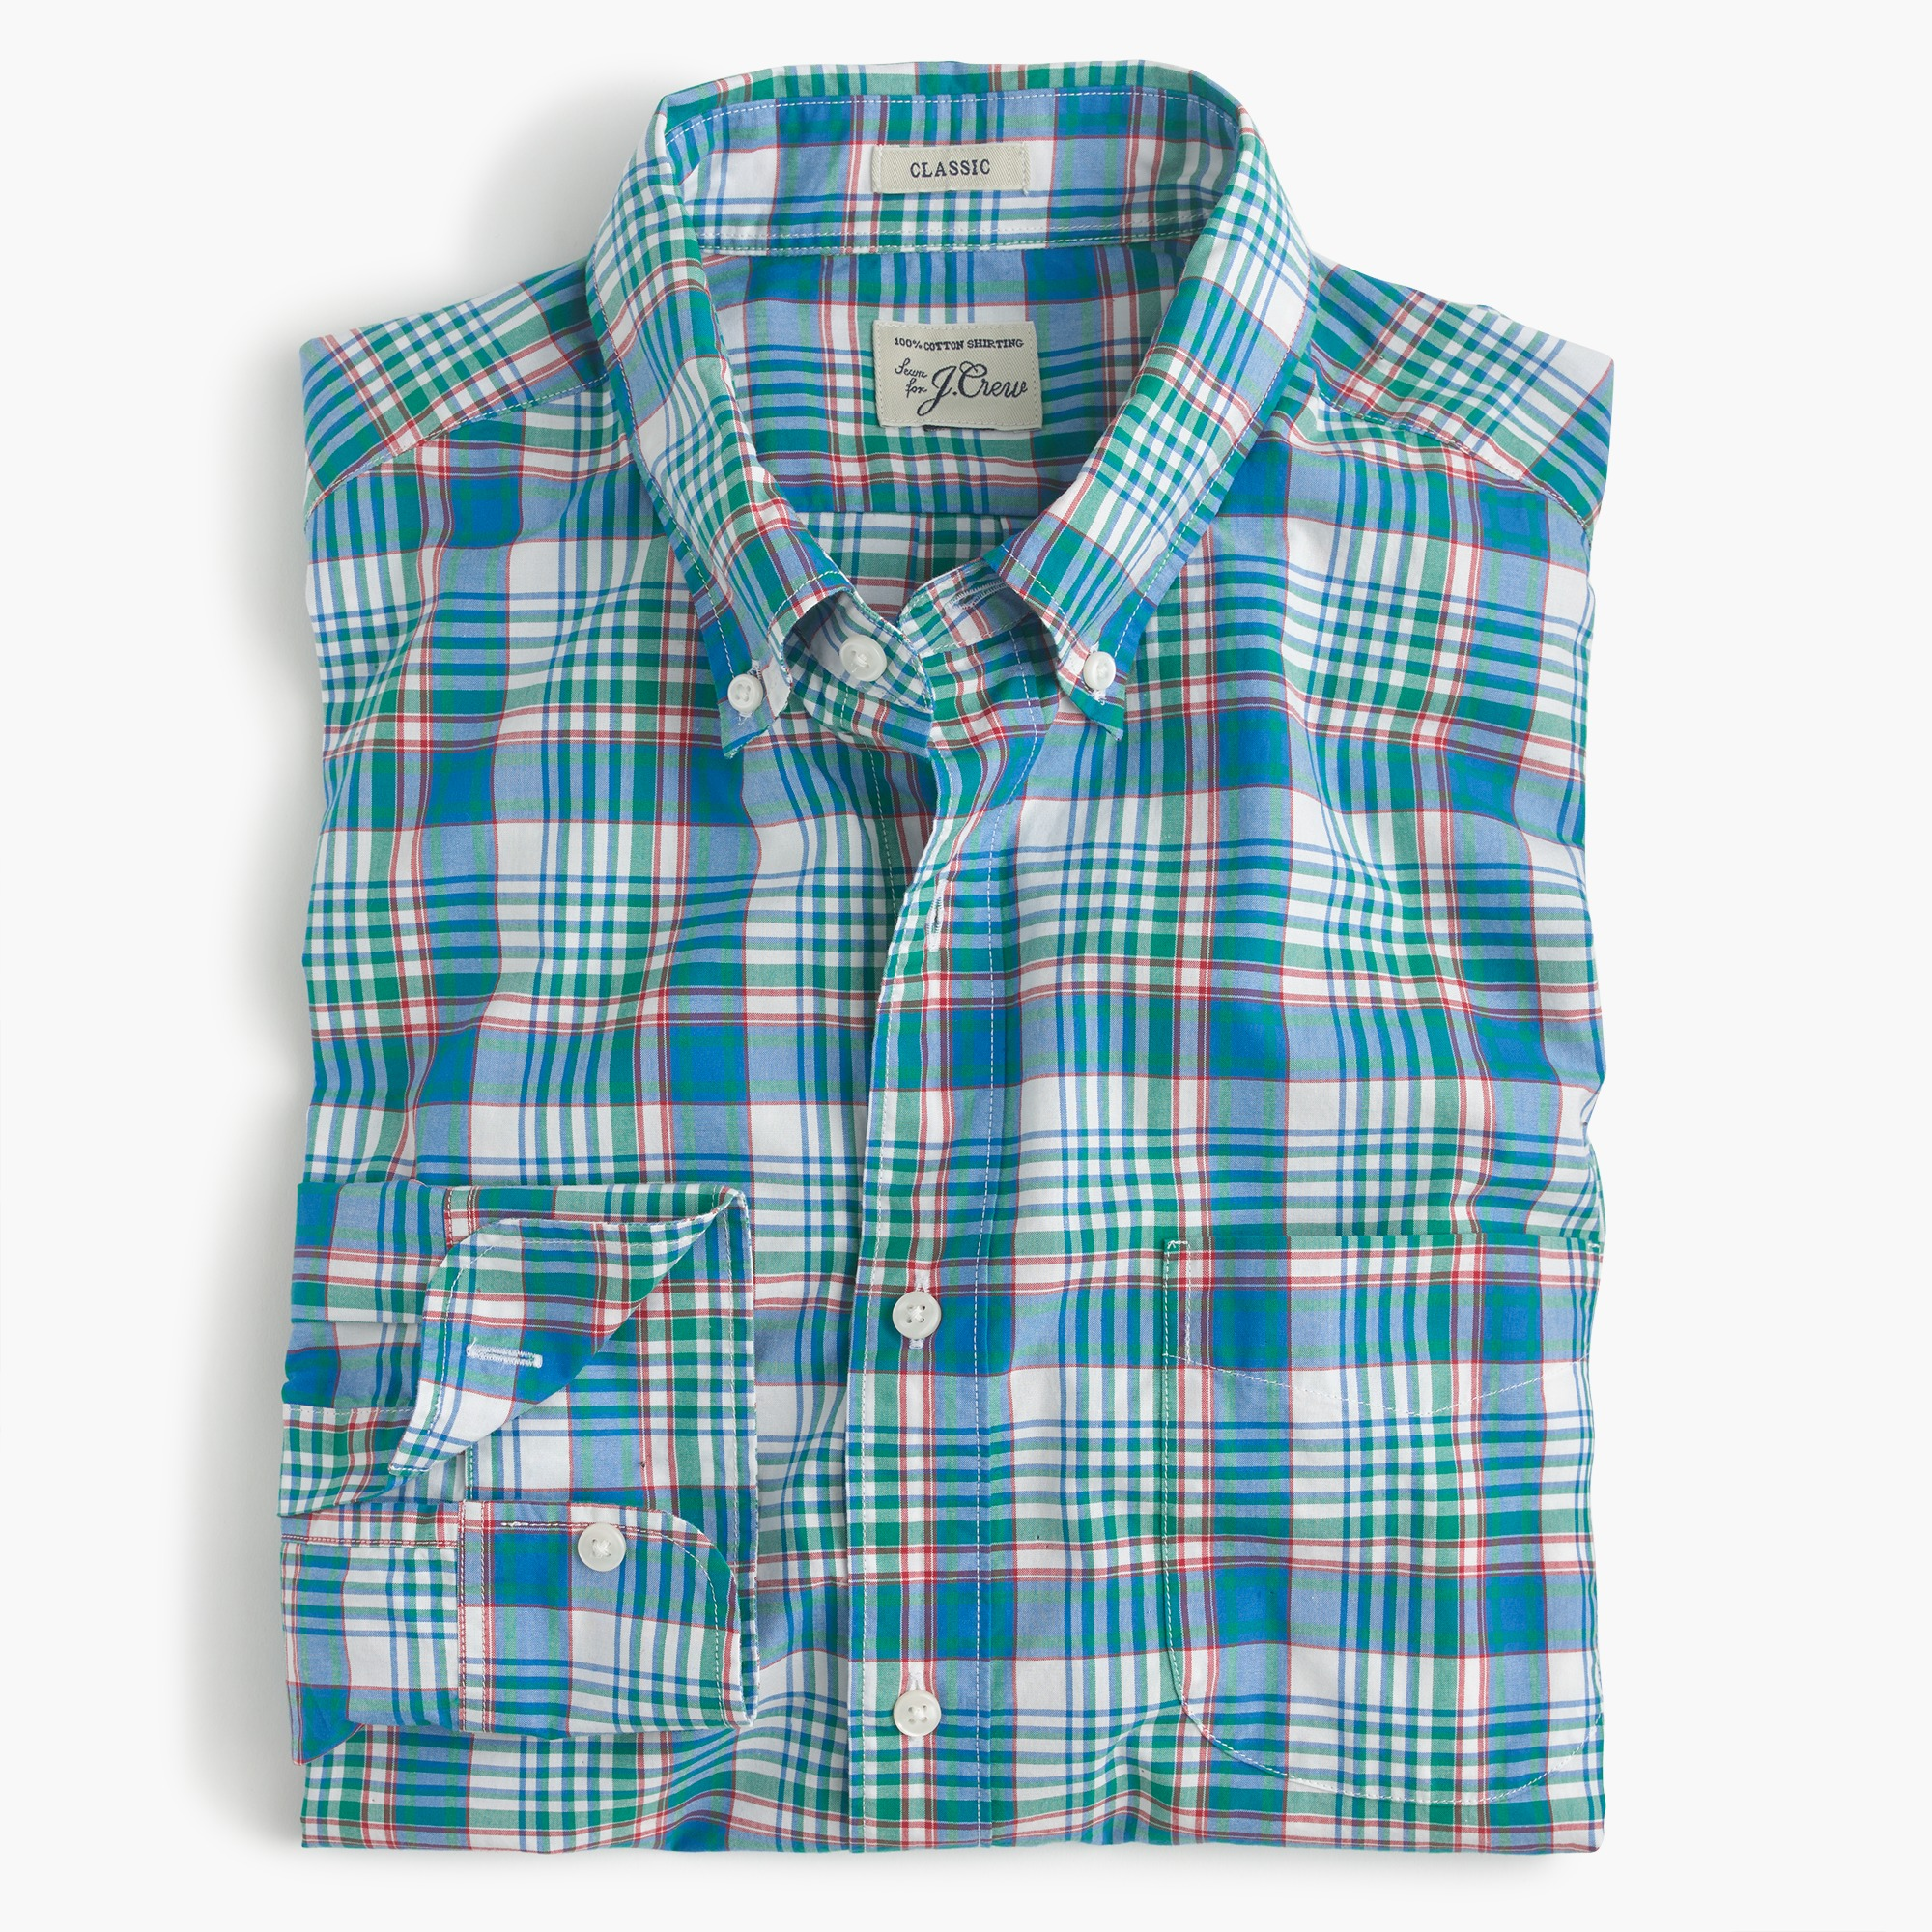 secret wash shirt in light blue plaid : men dress shirts